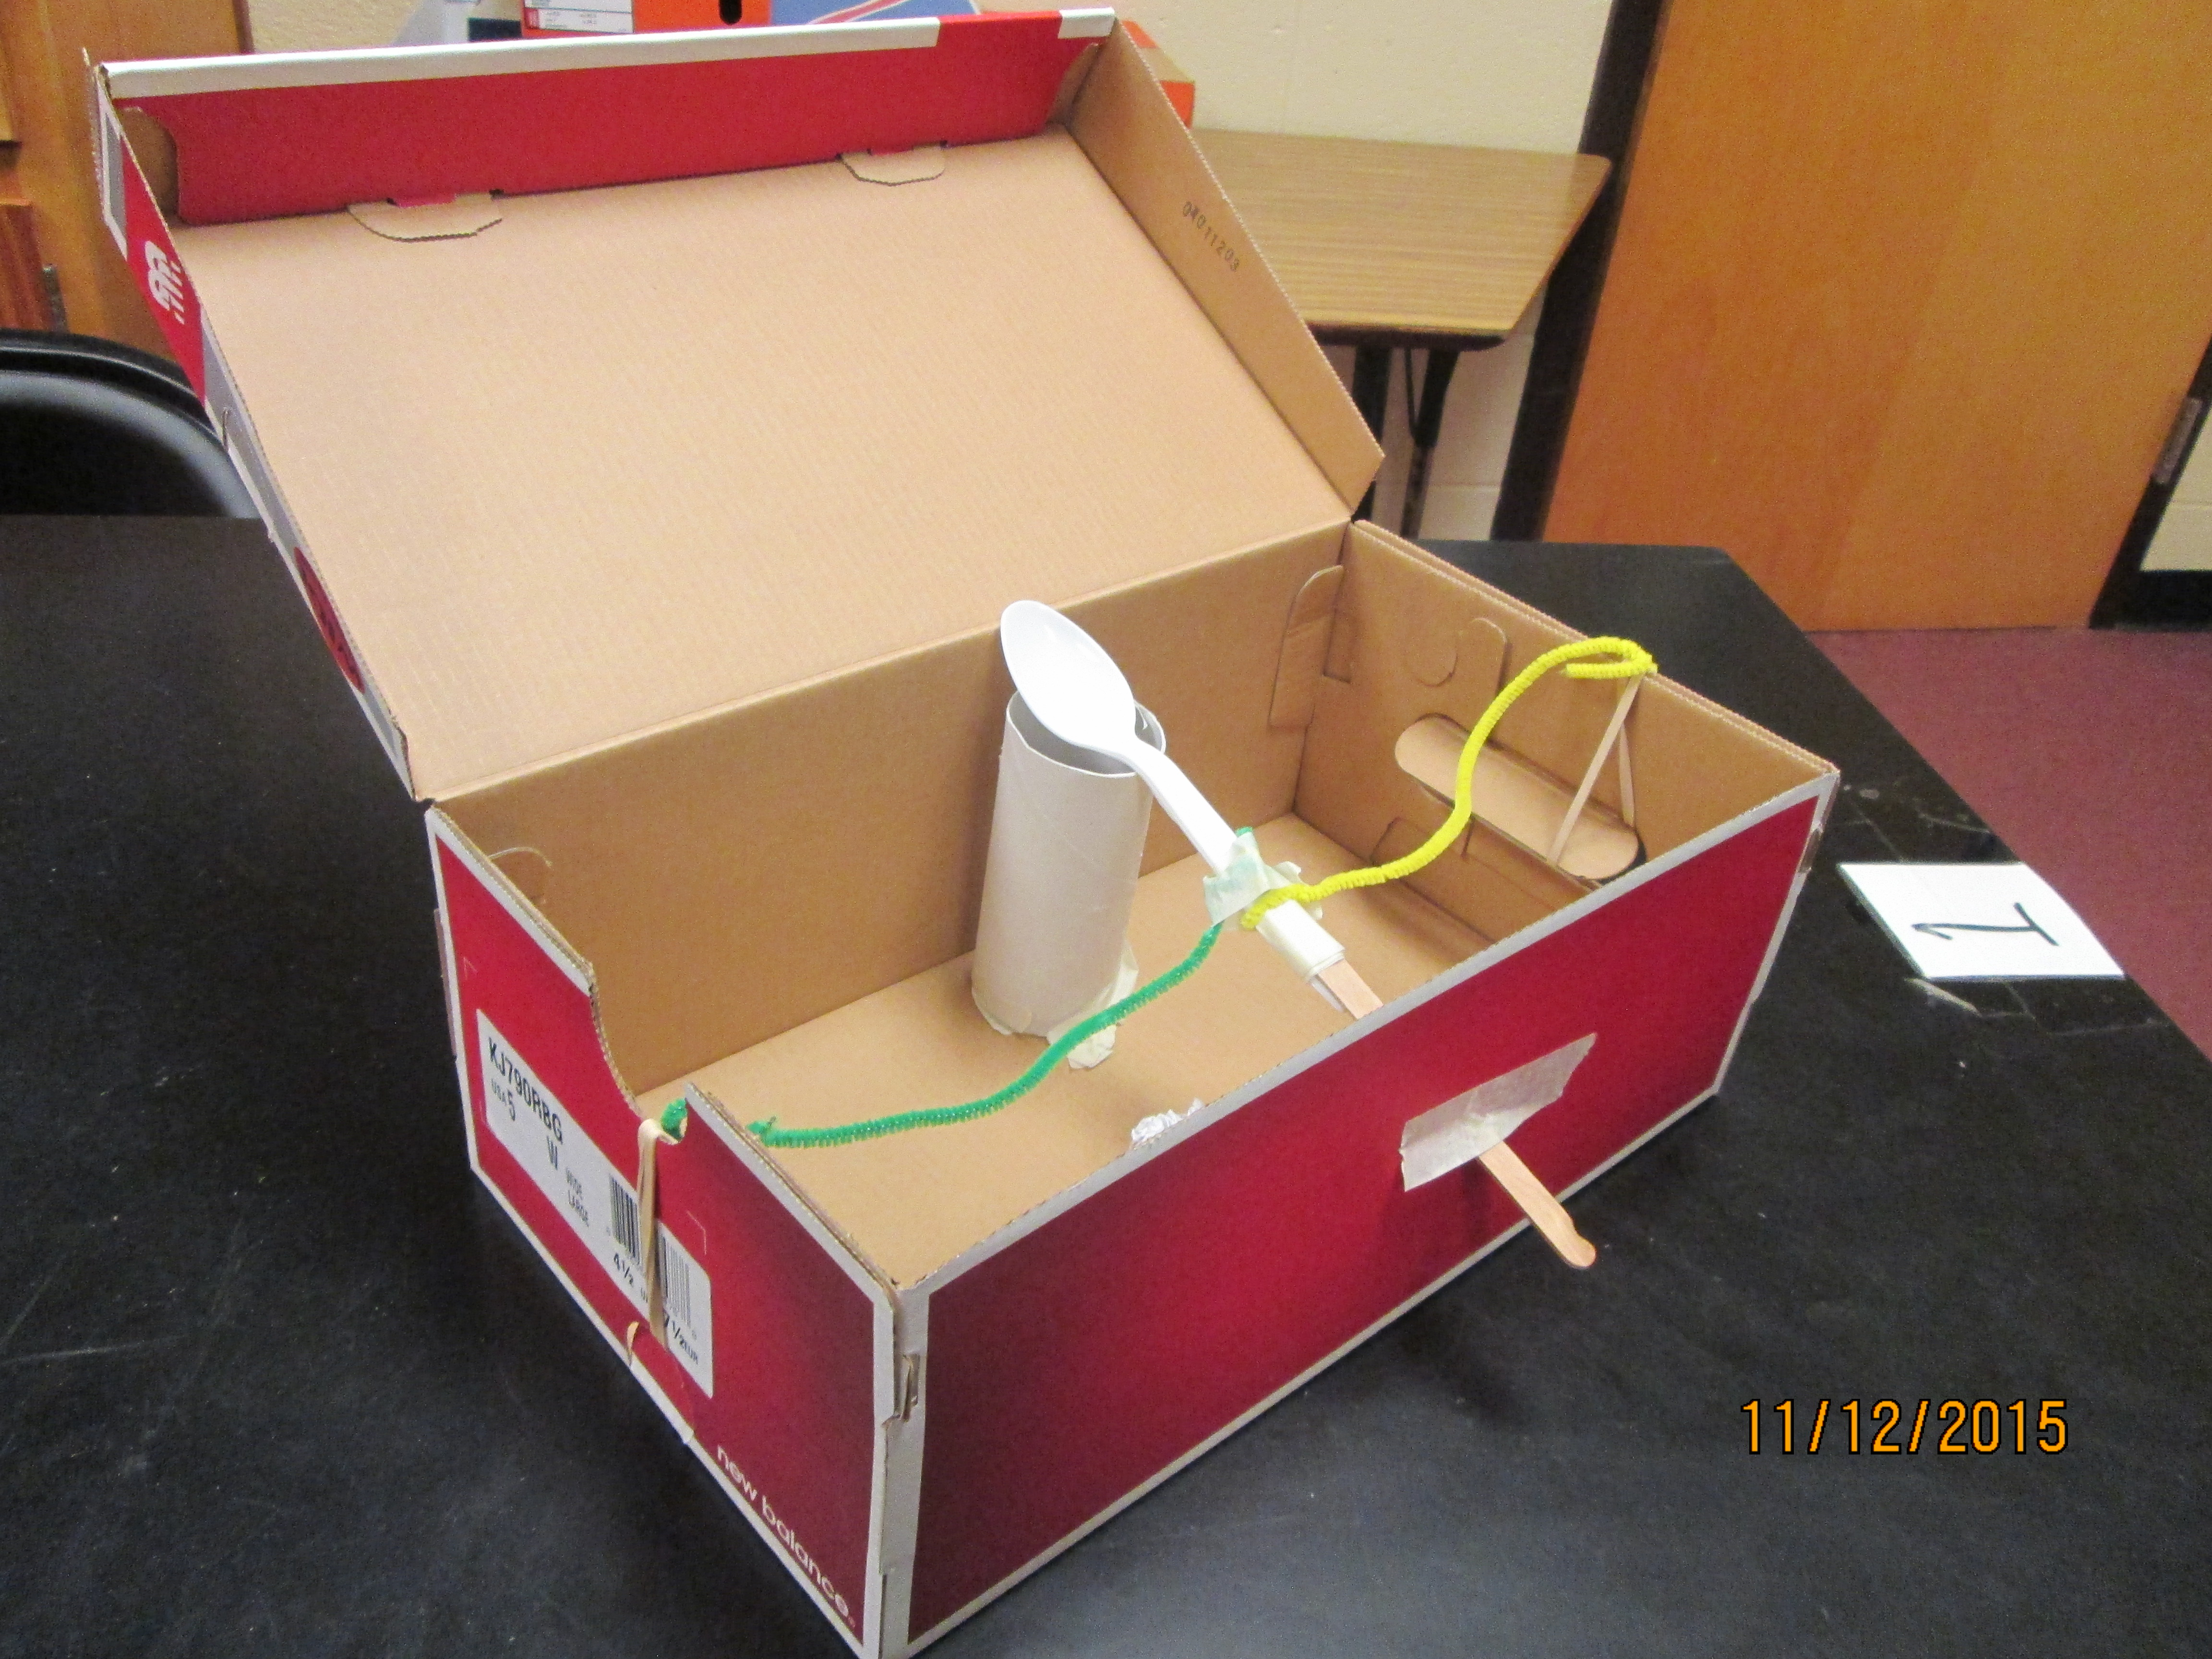 Simple machines project ideas - Img_0782 Img_0789 Img_0783 Img_0787